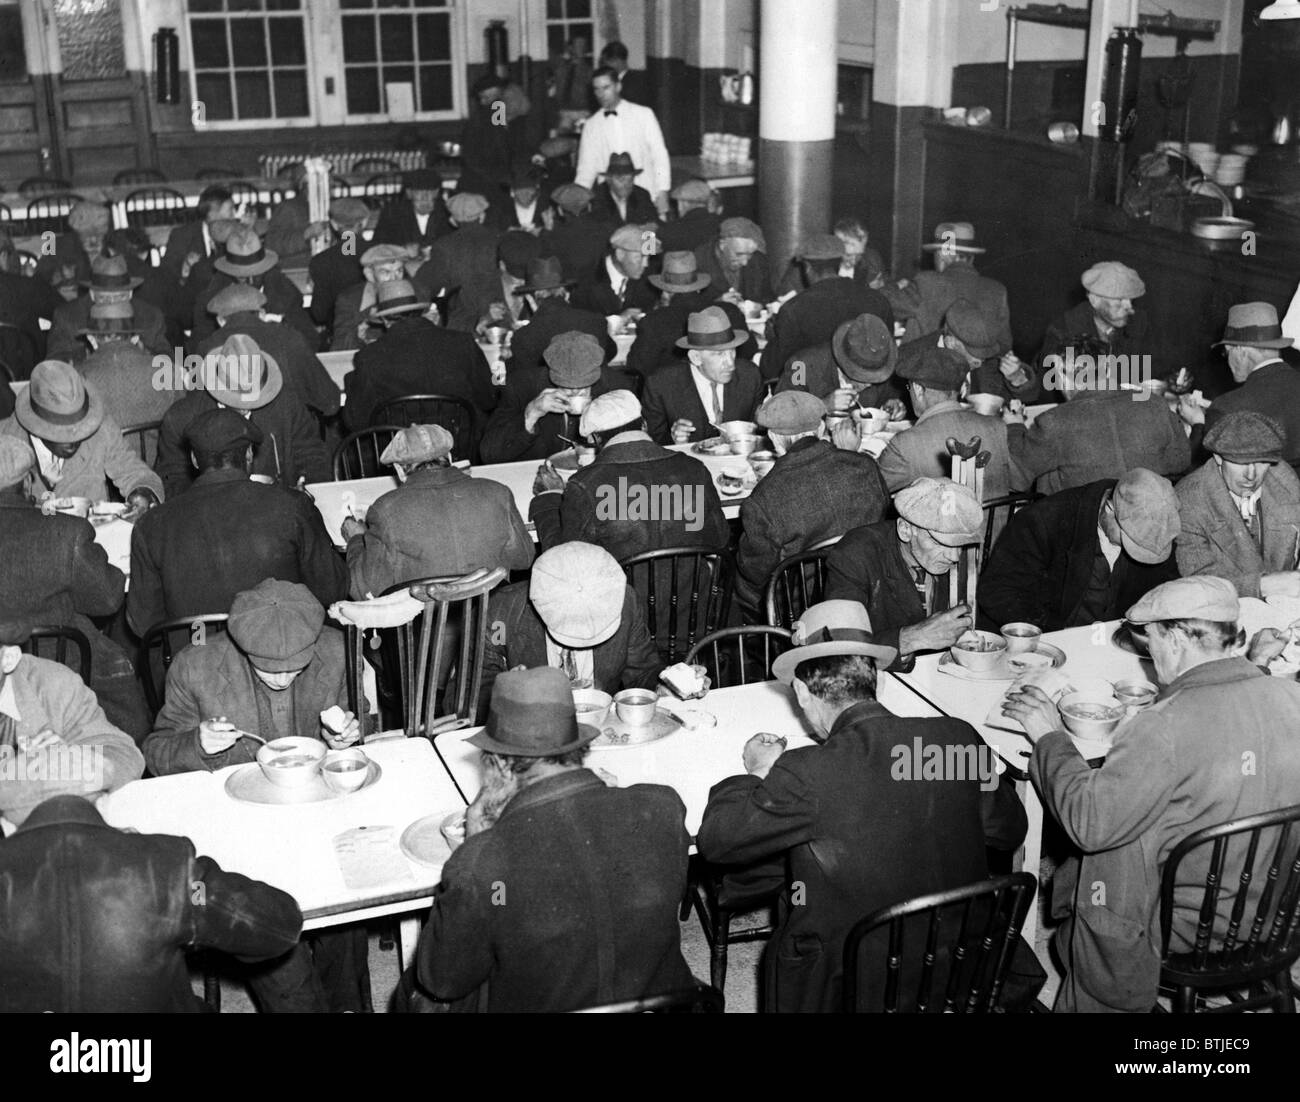 Great Depression, Unemployed and homeless men eating at Municipal Lodging House (25th Street & East River), - Stock Image